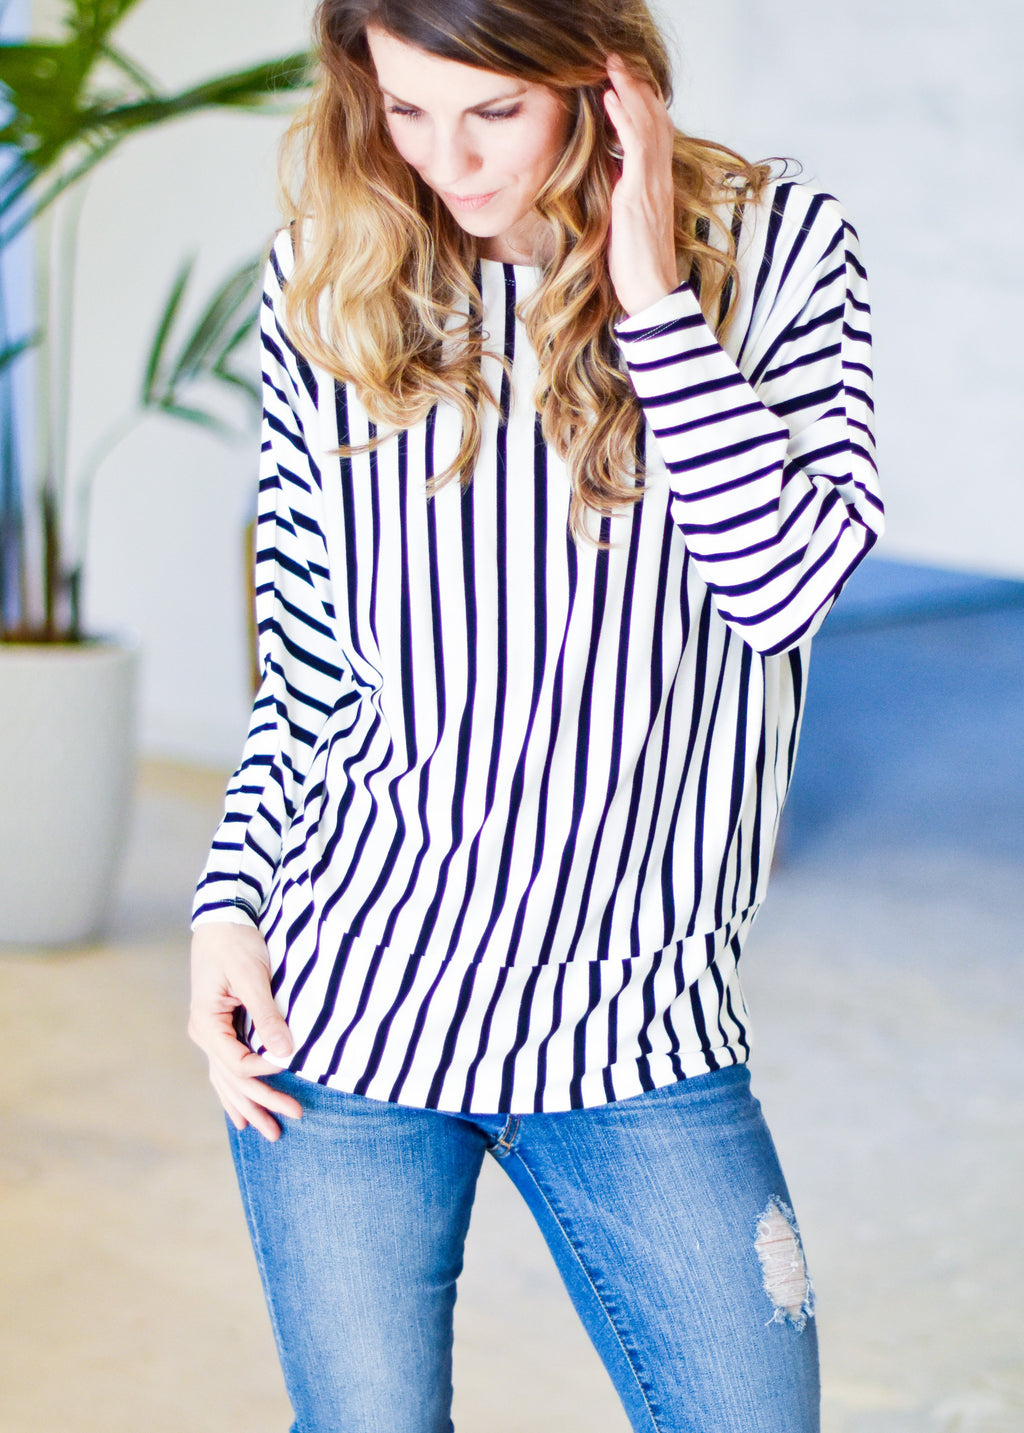 ON THE GO WITH STRIPES